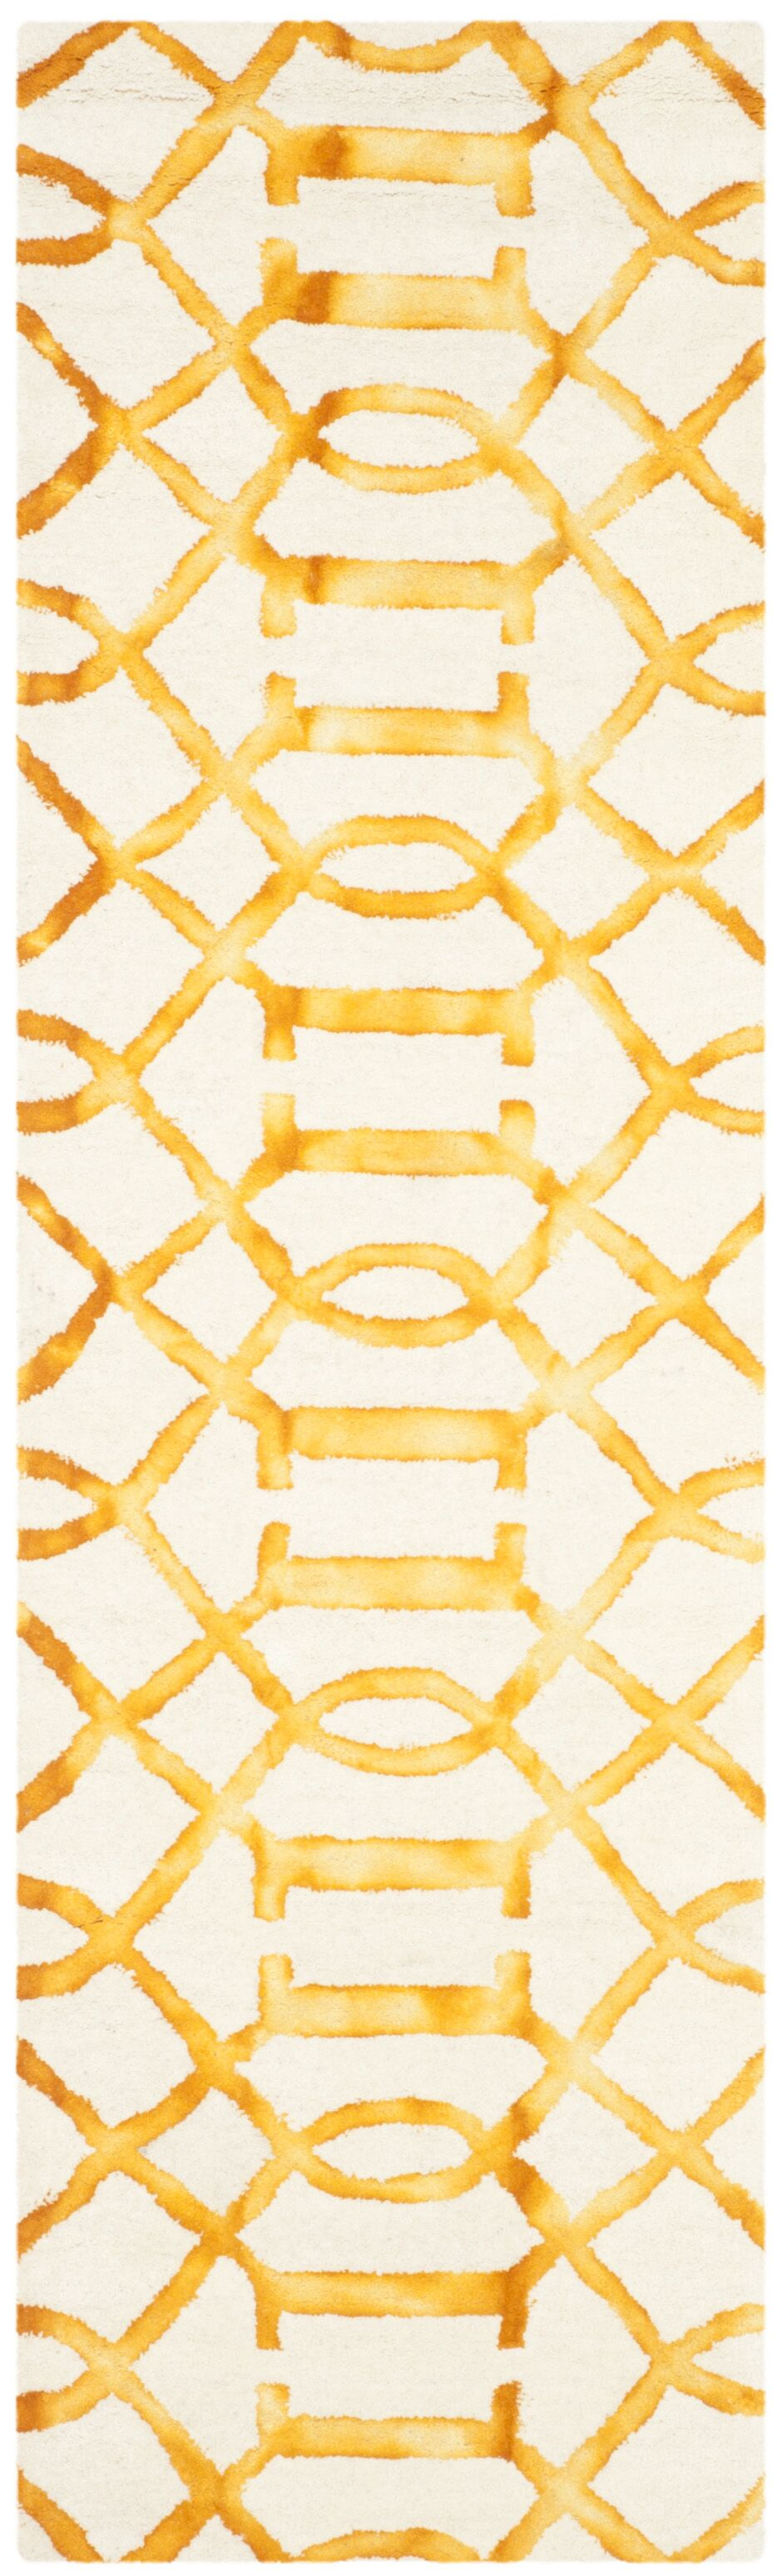 Sinclair Ivory/Gold Area Rug Rug Size: Runner 2'3